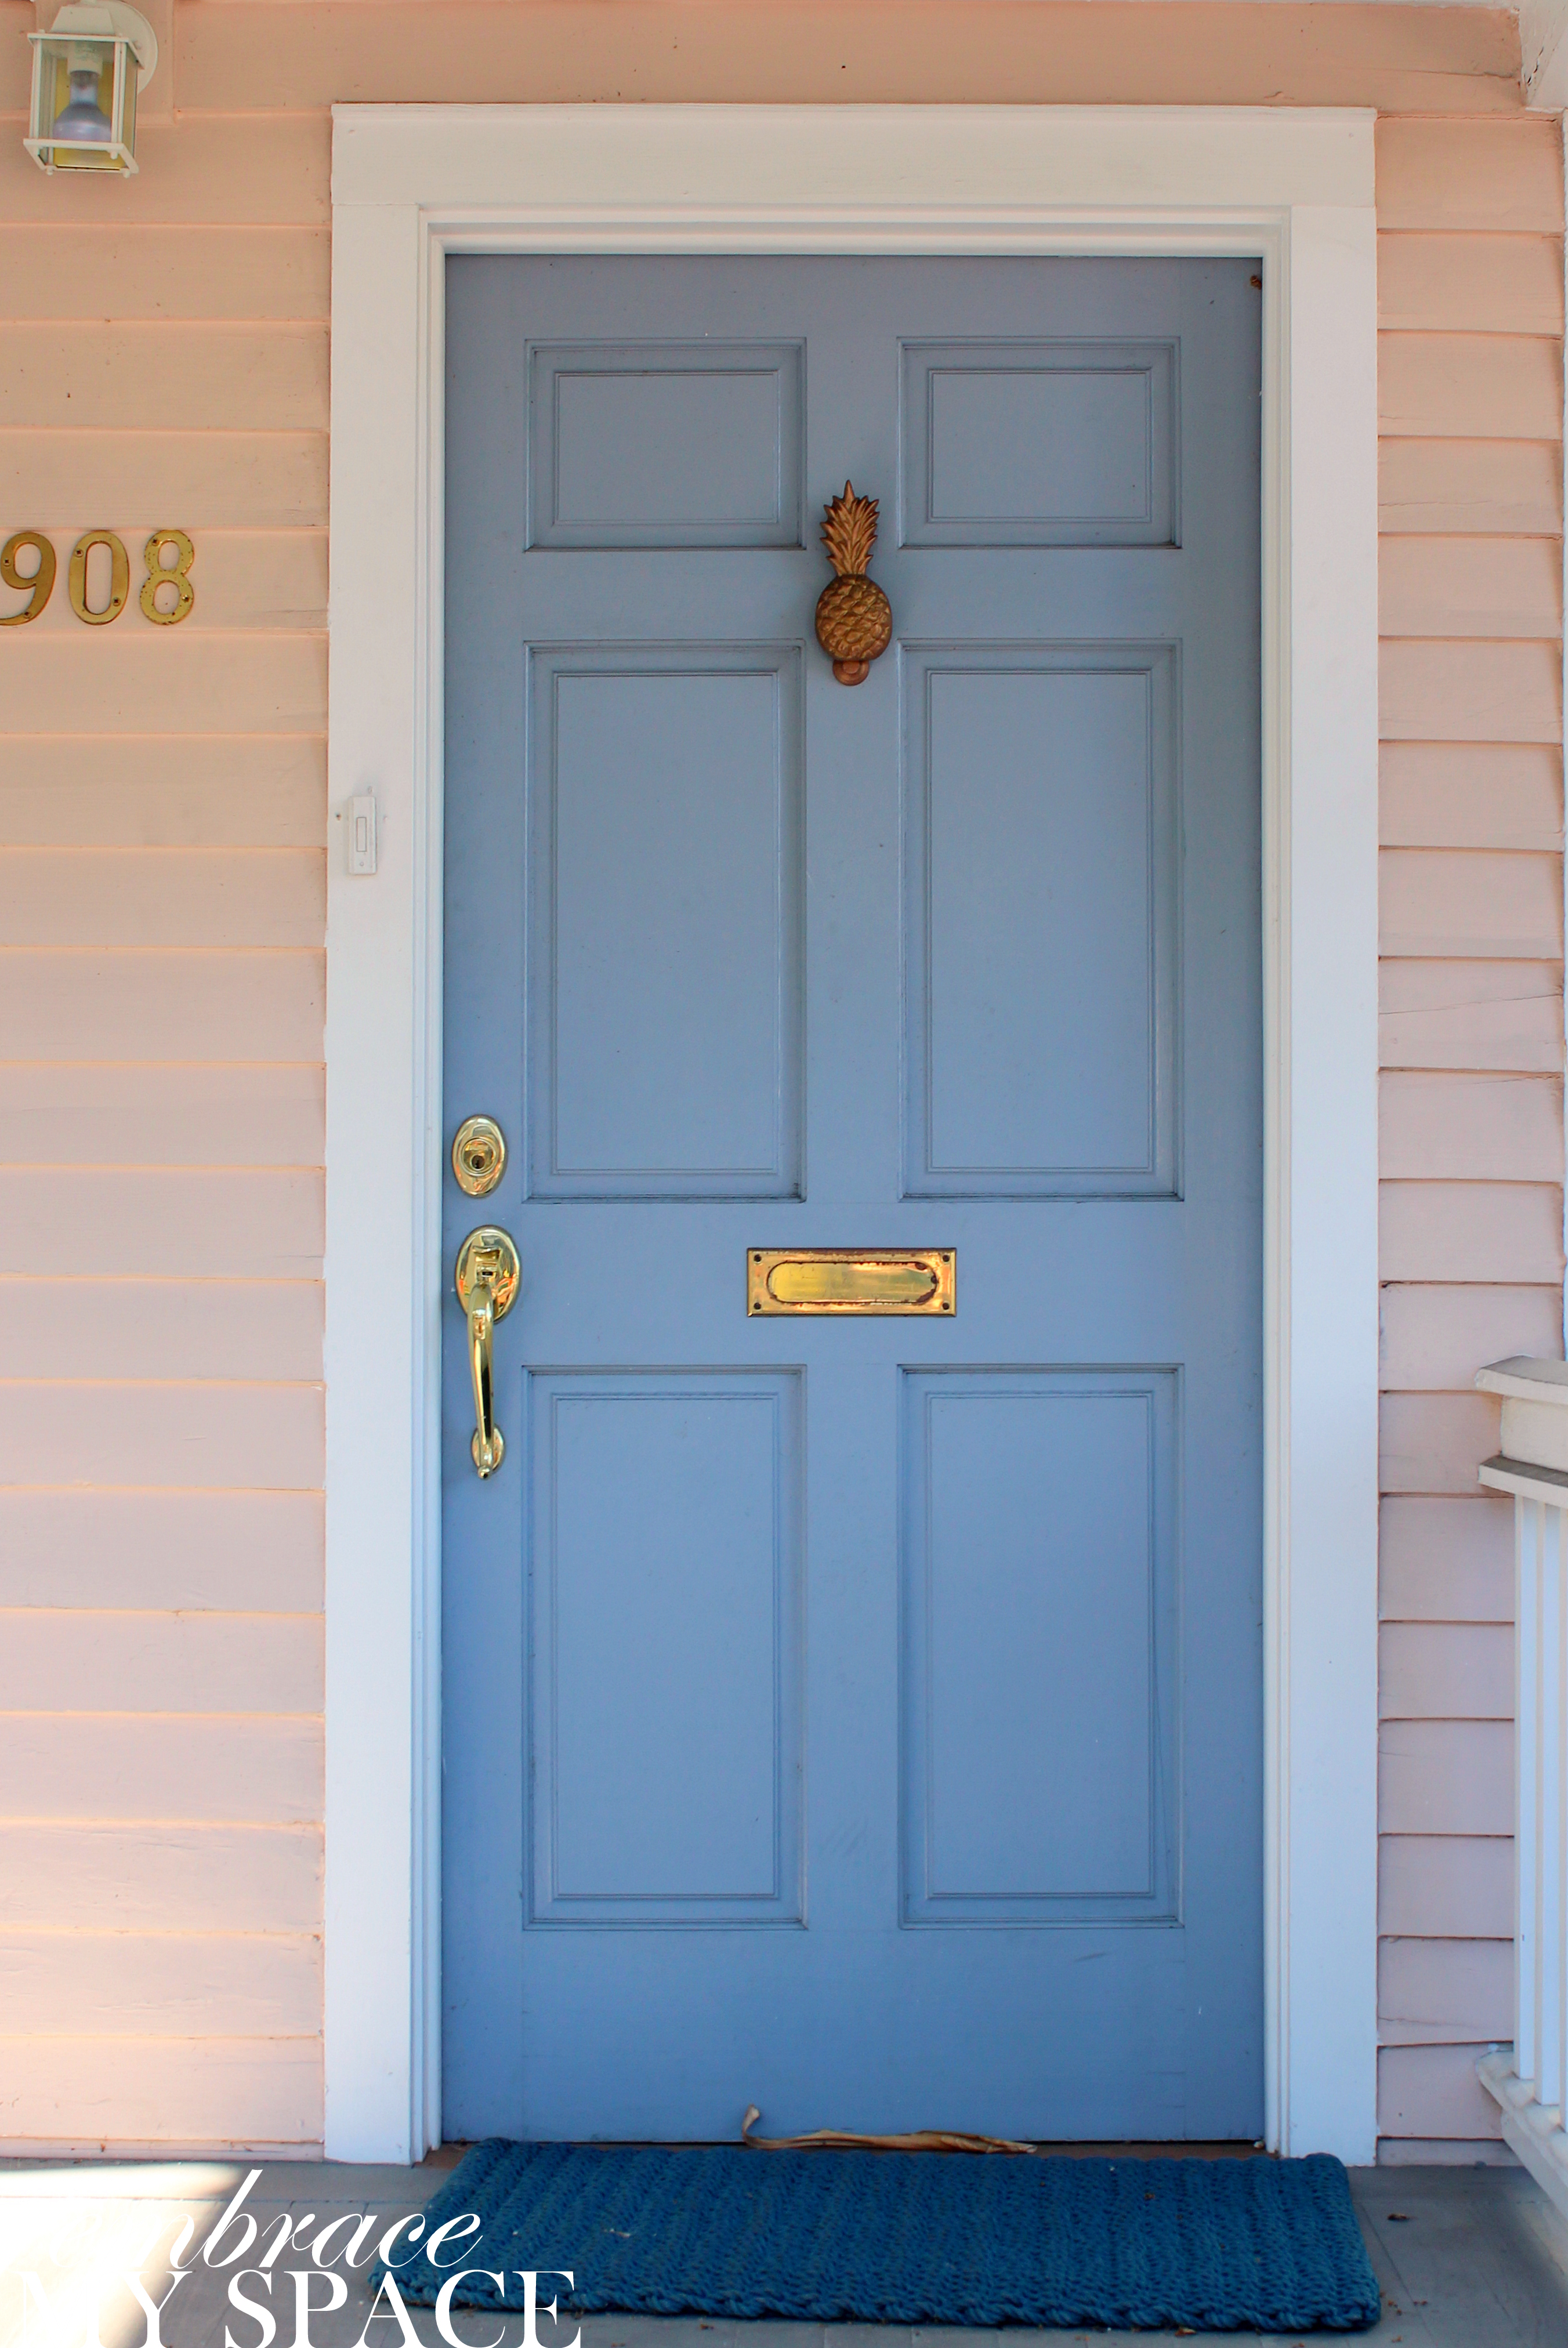 4048 #0F3B5E Splash Of Color Finally My Favorite Style Doors Painted In All Colors  image Colored Entry Doors 47132703